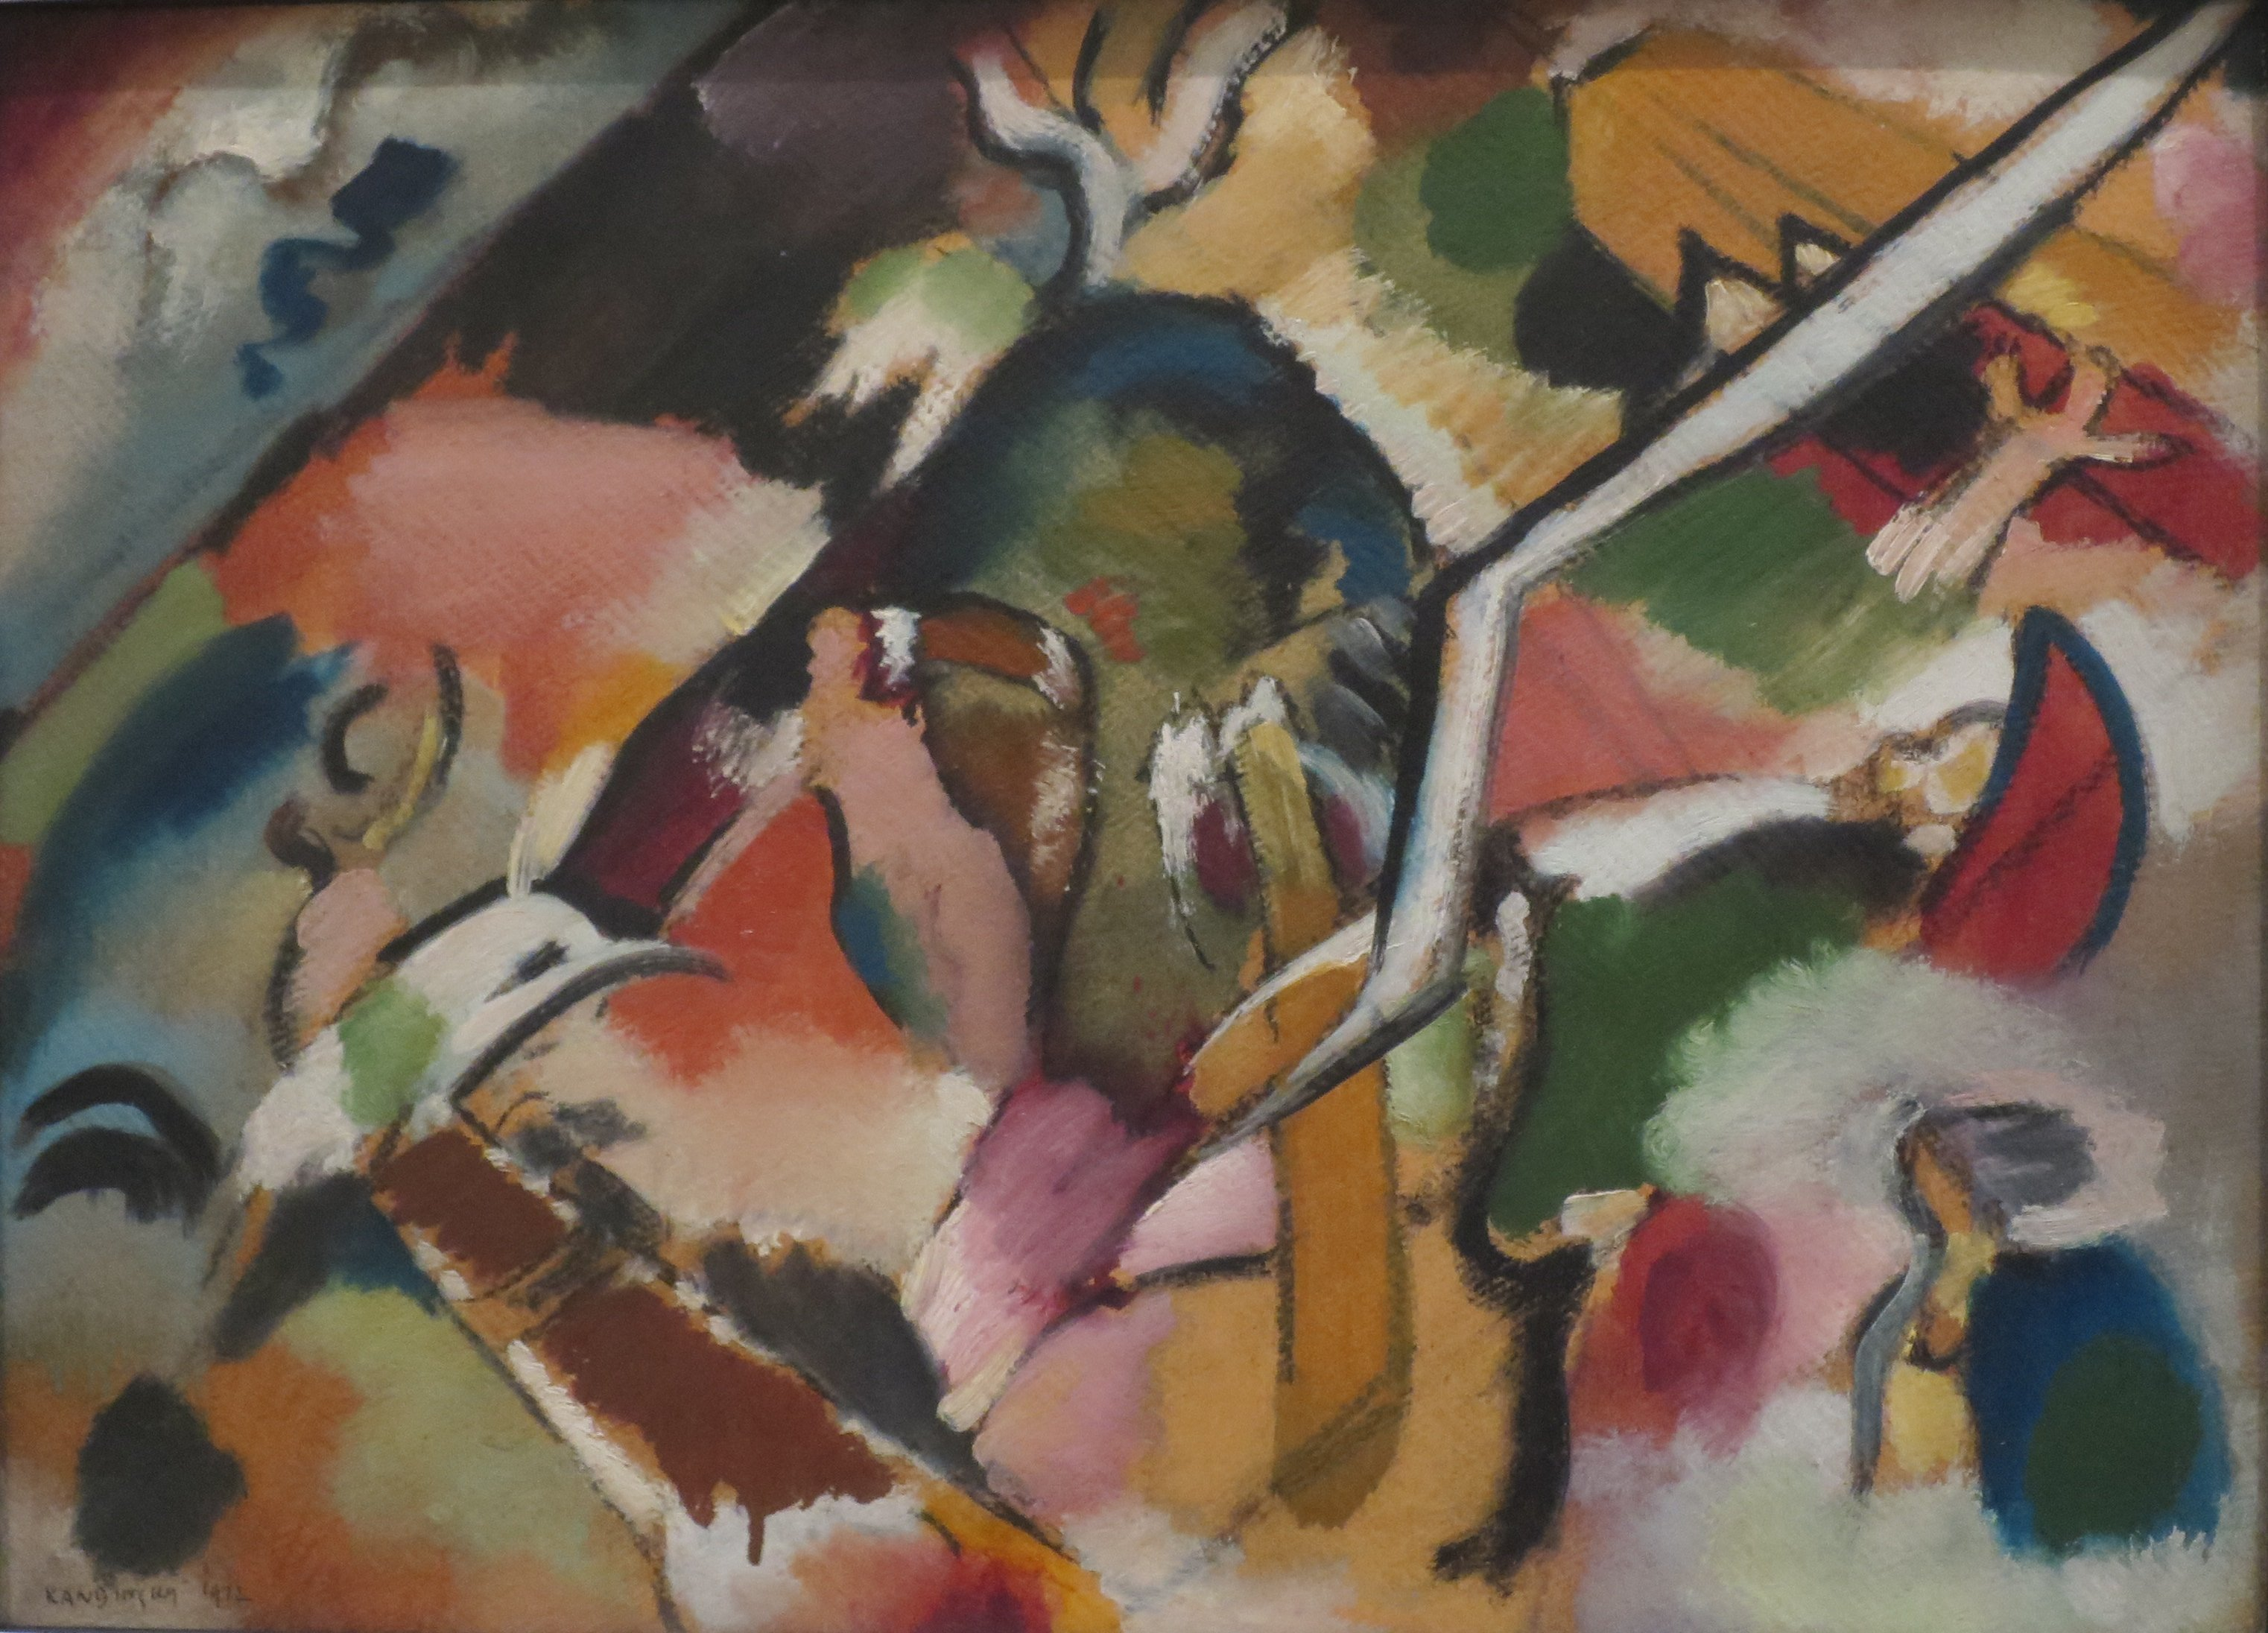 abstract painting of a deluge